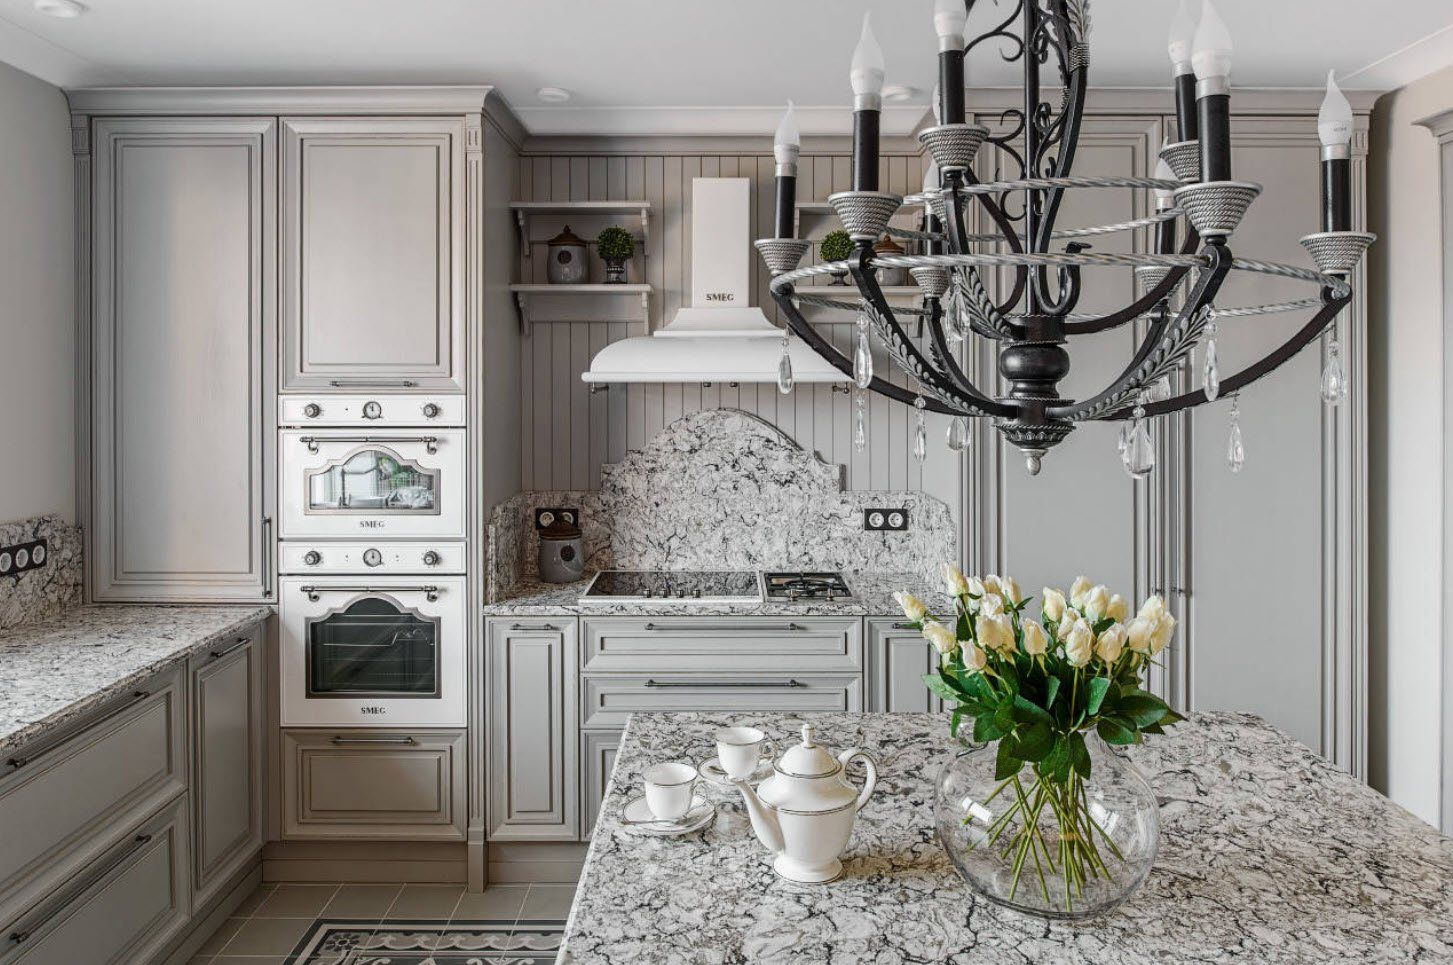 75 Square Feet Kitchen Interior Decoration Advice and Design Ideas. Classic white kitchen with carved facades